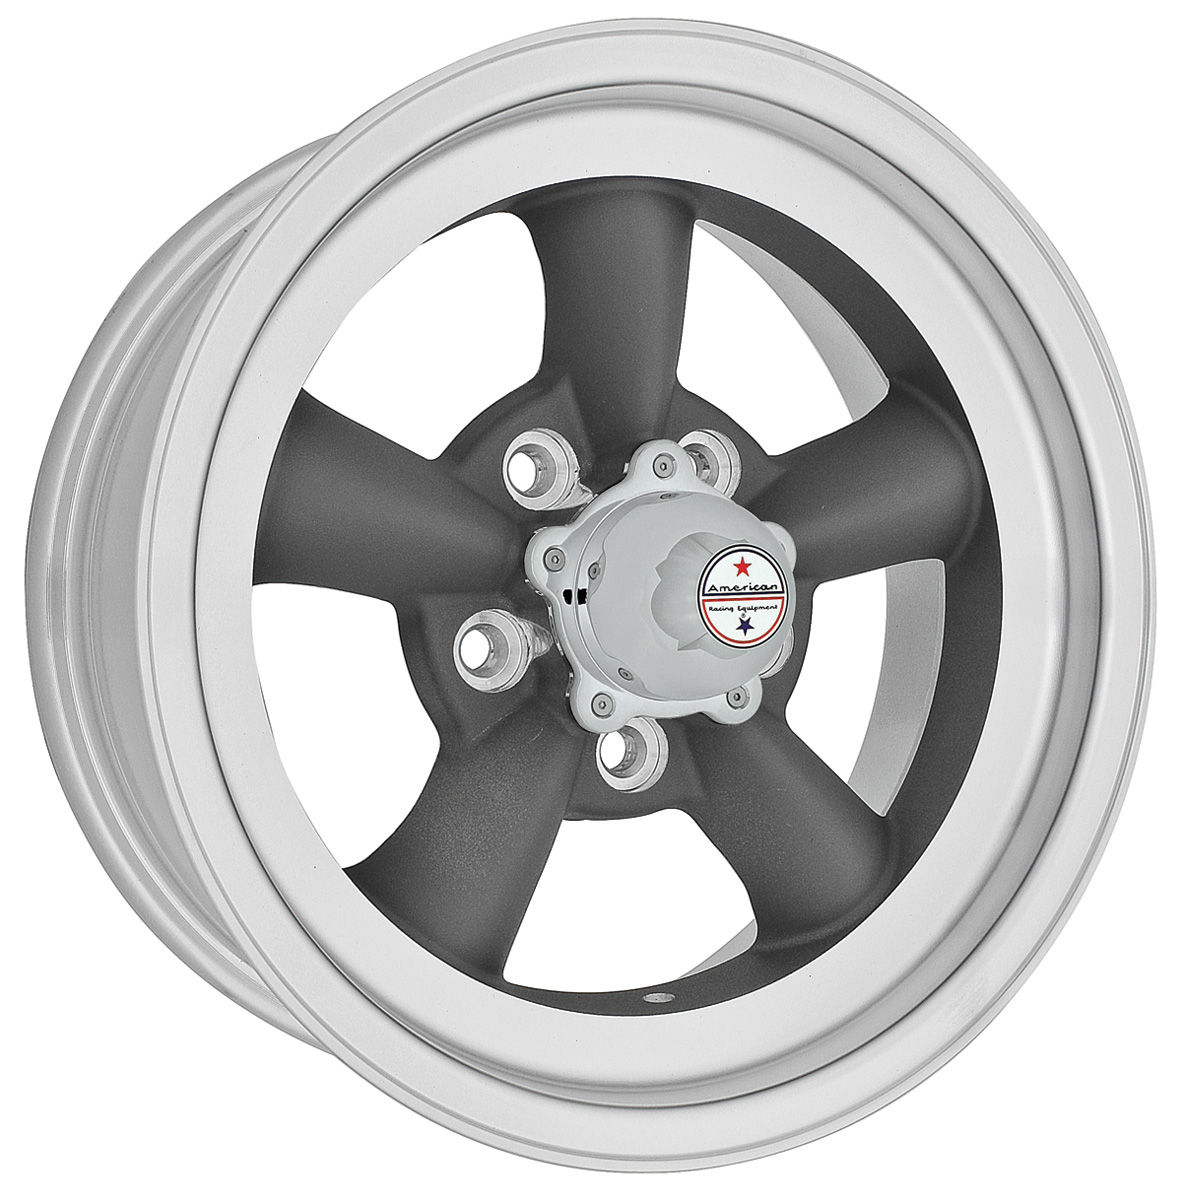 "Photo of Wheel, Torq-Thrust D Racing 15"" x 6"" (3-5/8"" BS) +4 mm offset"